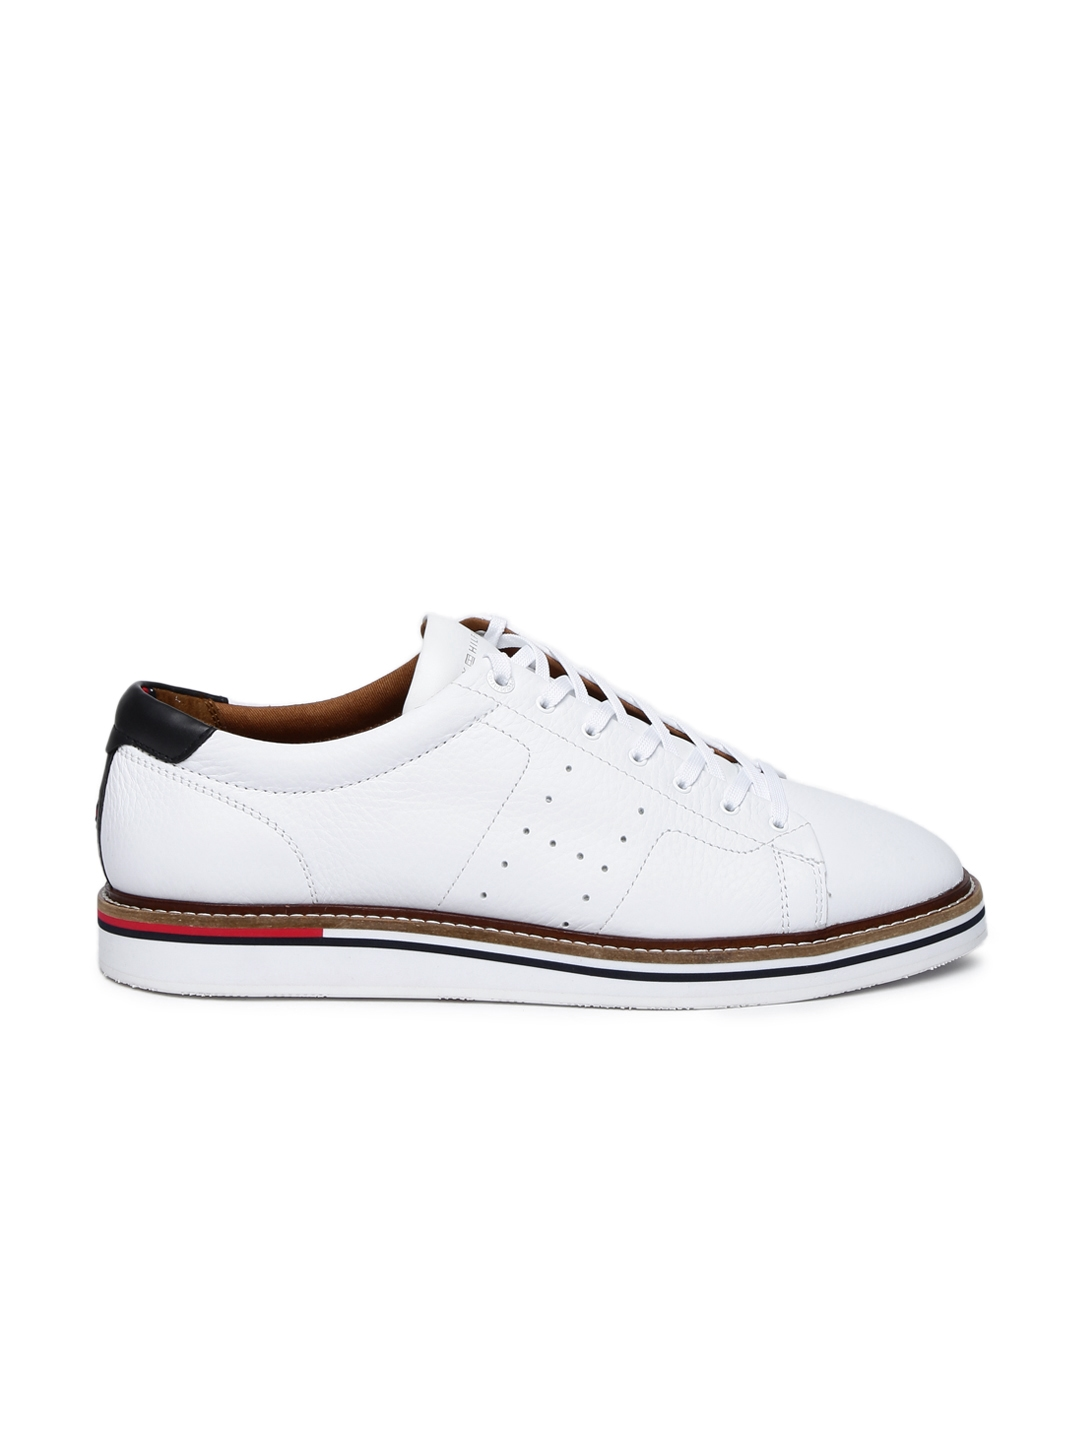 5e6f8de1f Buy Tommy Hilfiger Men White Sneakers - Casual Shoes for Men 2477425 ...